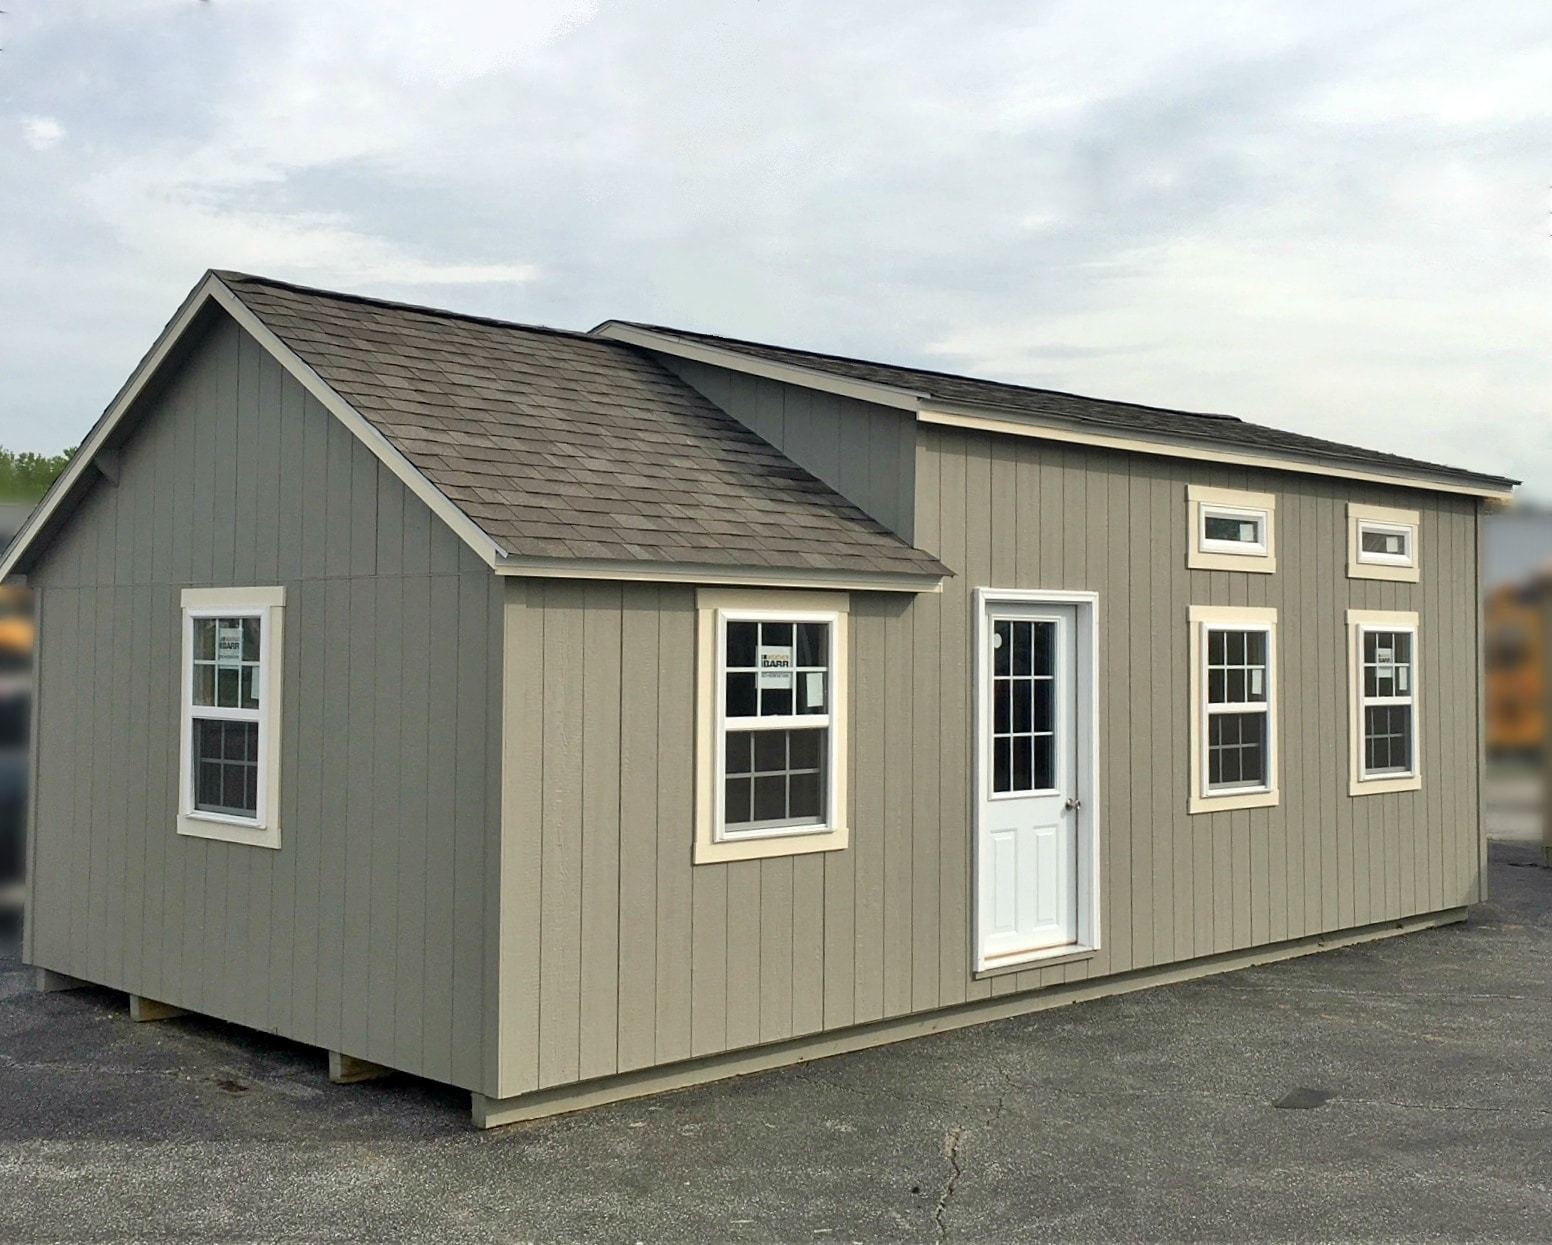 tiny houses portable buildings storage sheds tiny houses easy credit terms. Black Bedroom Furniture Sets. Home Design Ideas